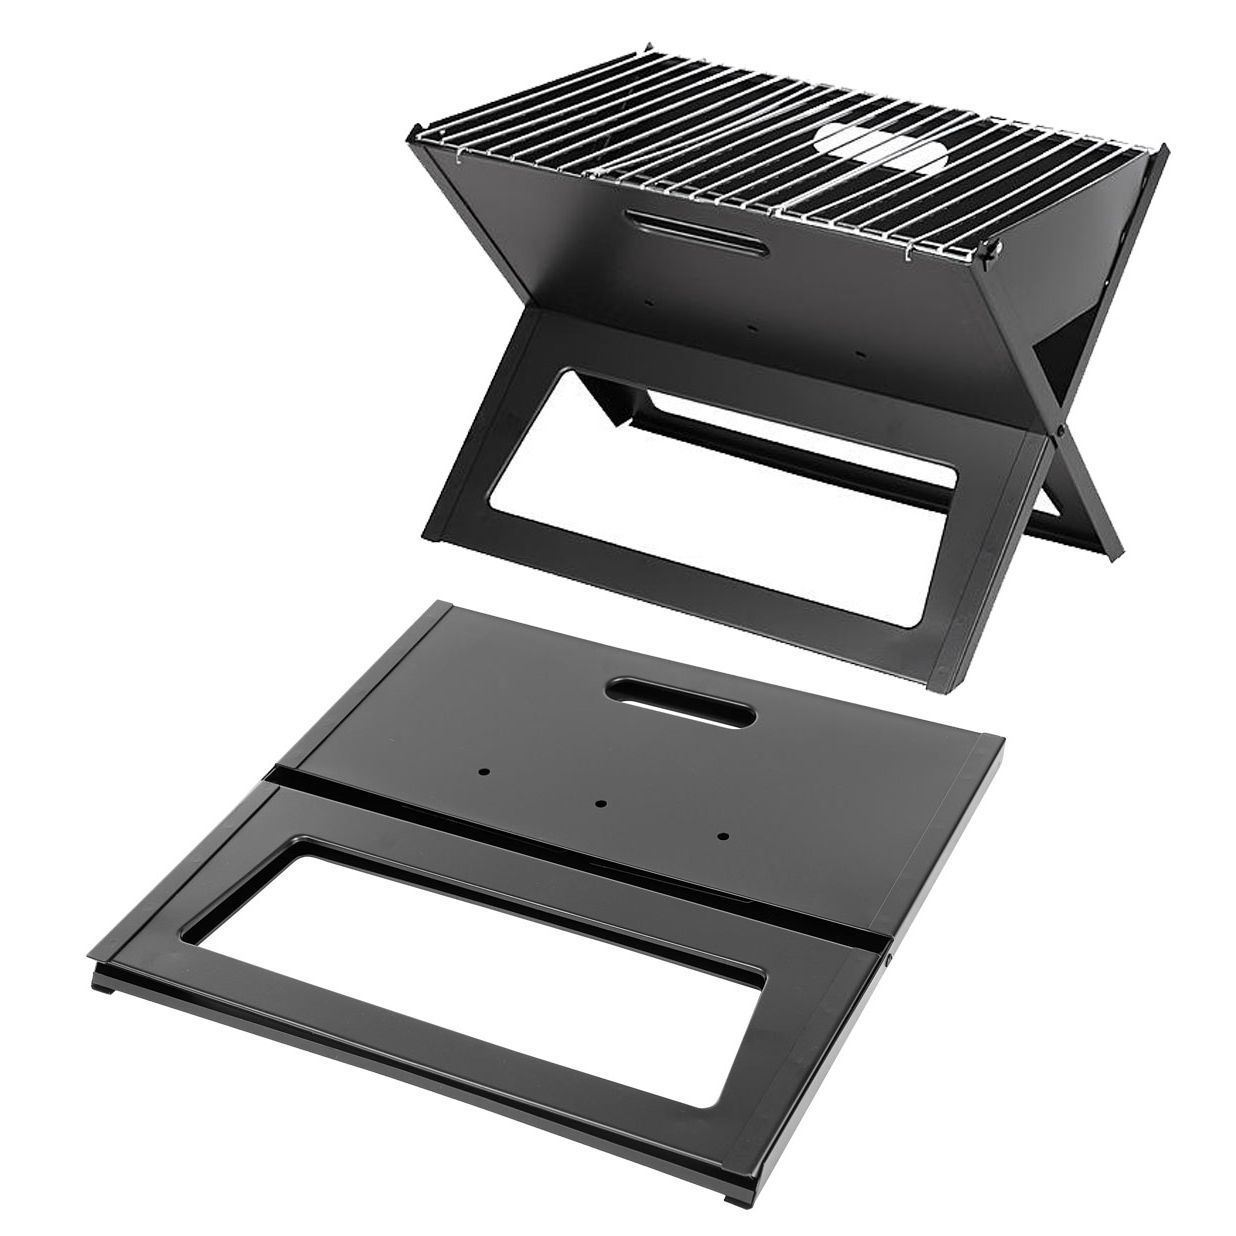 Portable Foldable BBQ Grill Stand Garden Patio Camp Barbeque Charcoal Table Flat